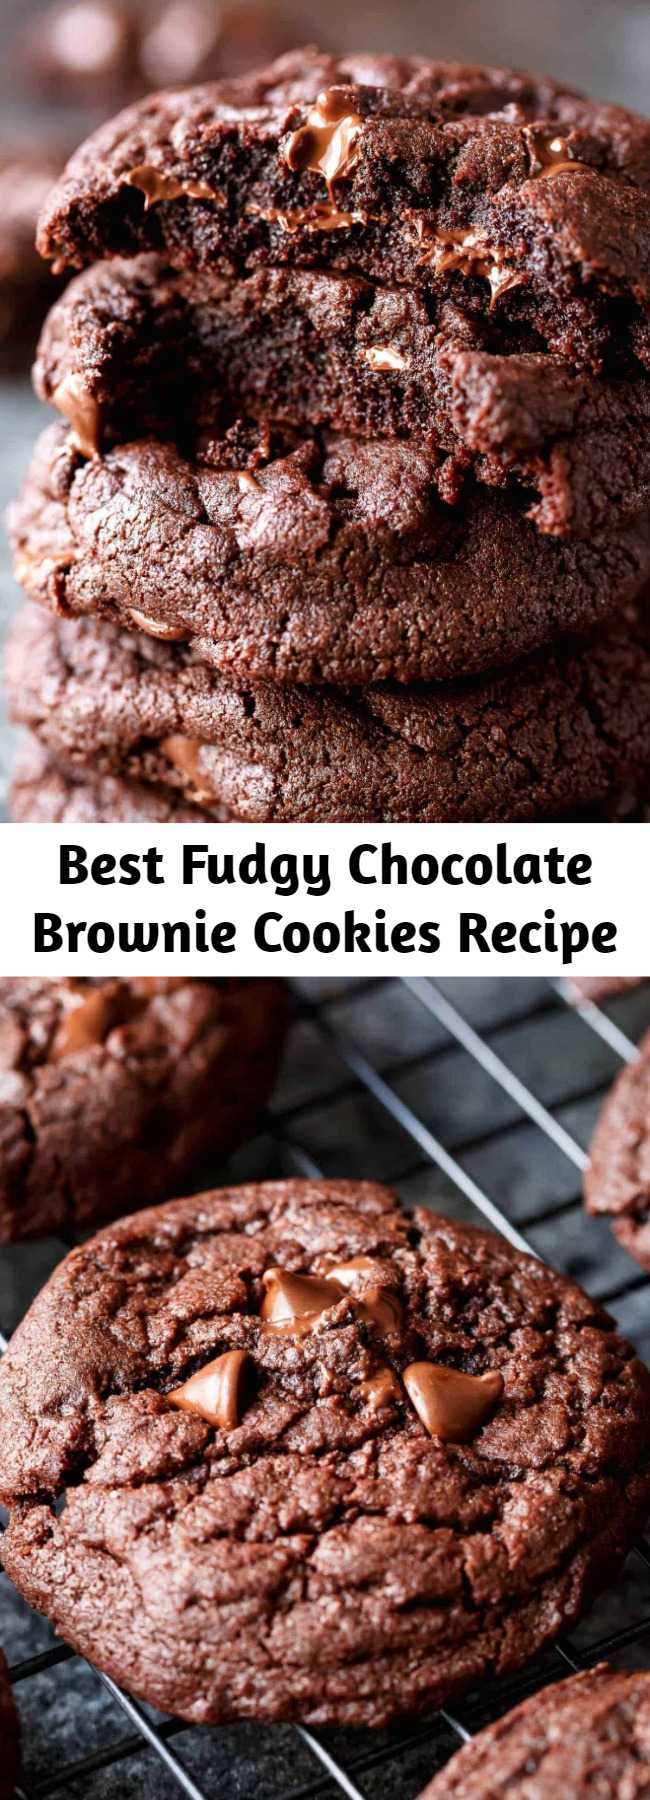 Best Fudgy Chocolate Brownie Cookies Recipe - Best Fudgy Chocolate Brownie Cookies are a one bowl wonder ready in minutes, and named better than a brownie cookie! They disappear in seconds!